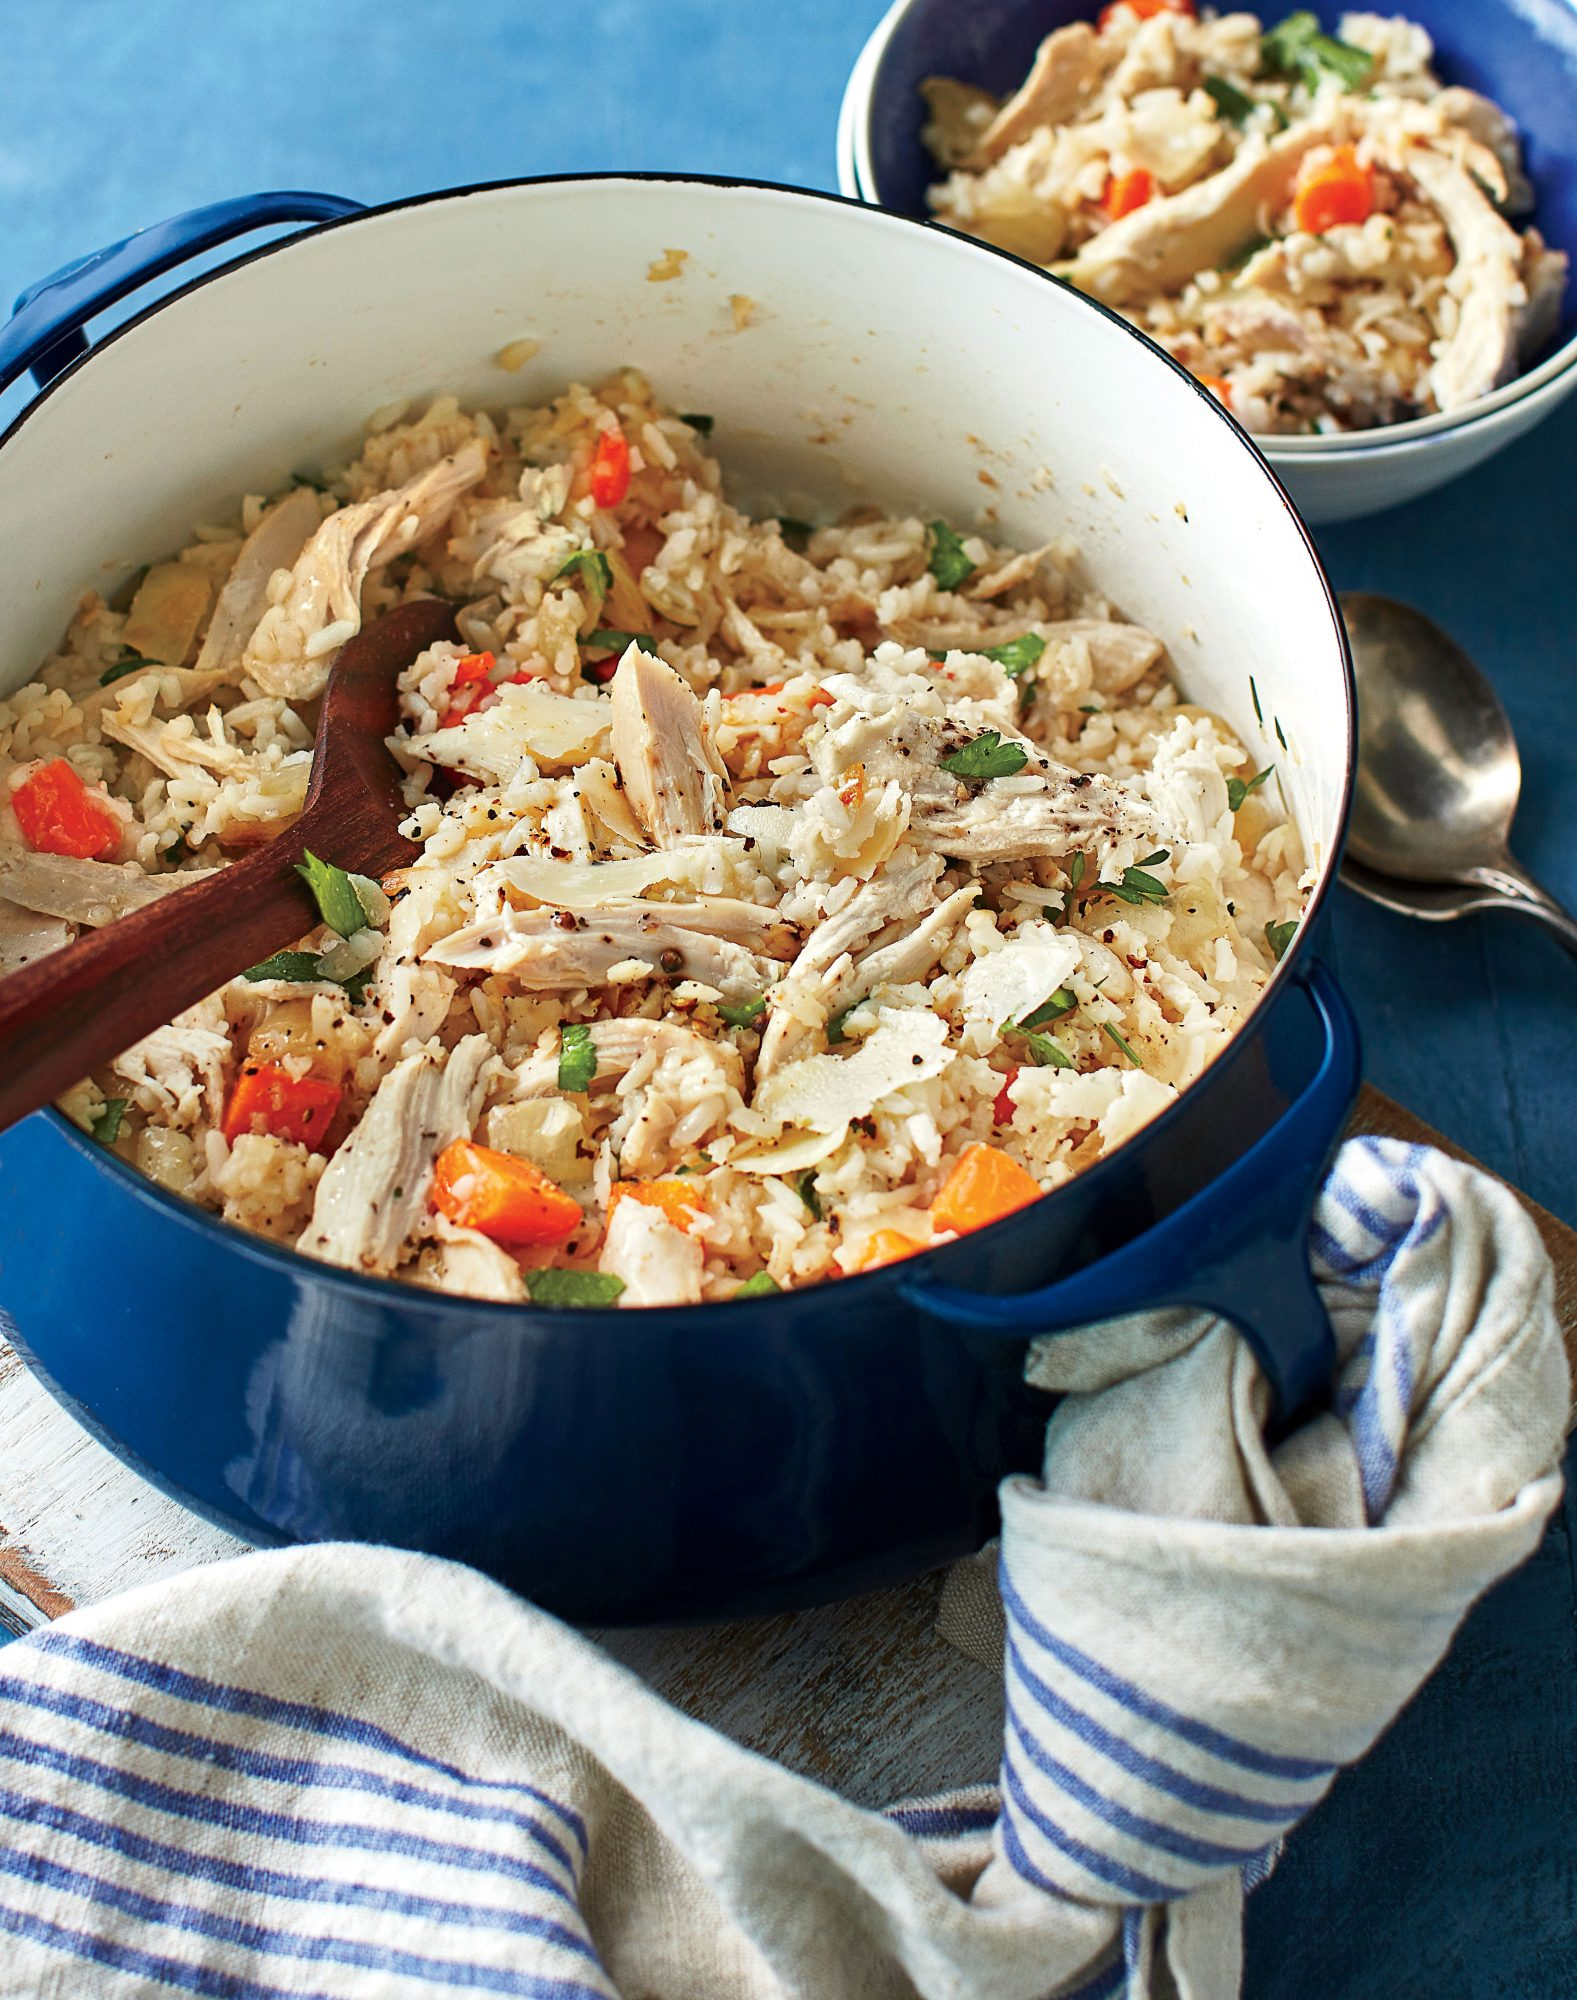 Zo S Kitchen Chicken Orzo my new go-to dish to bring a friend - southern living